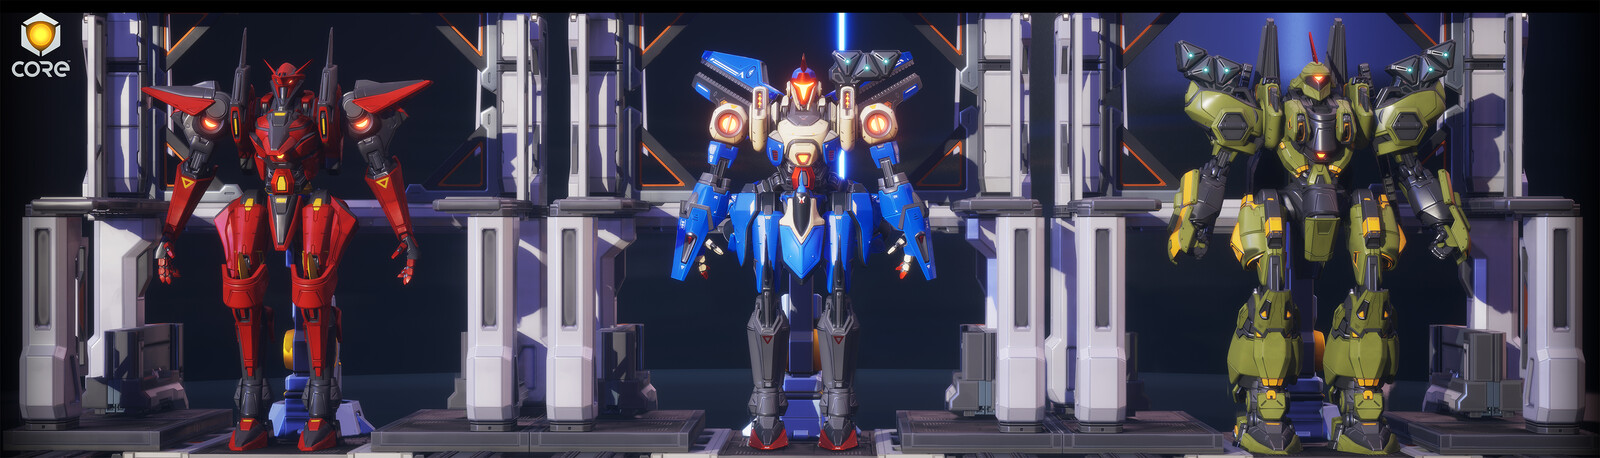 Mecha Templates created by Evan Gauge and Charles Smith